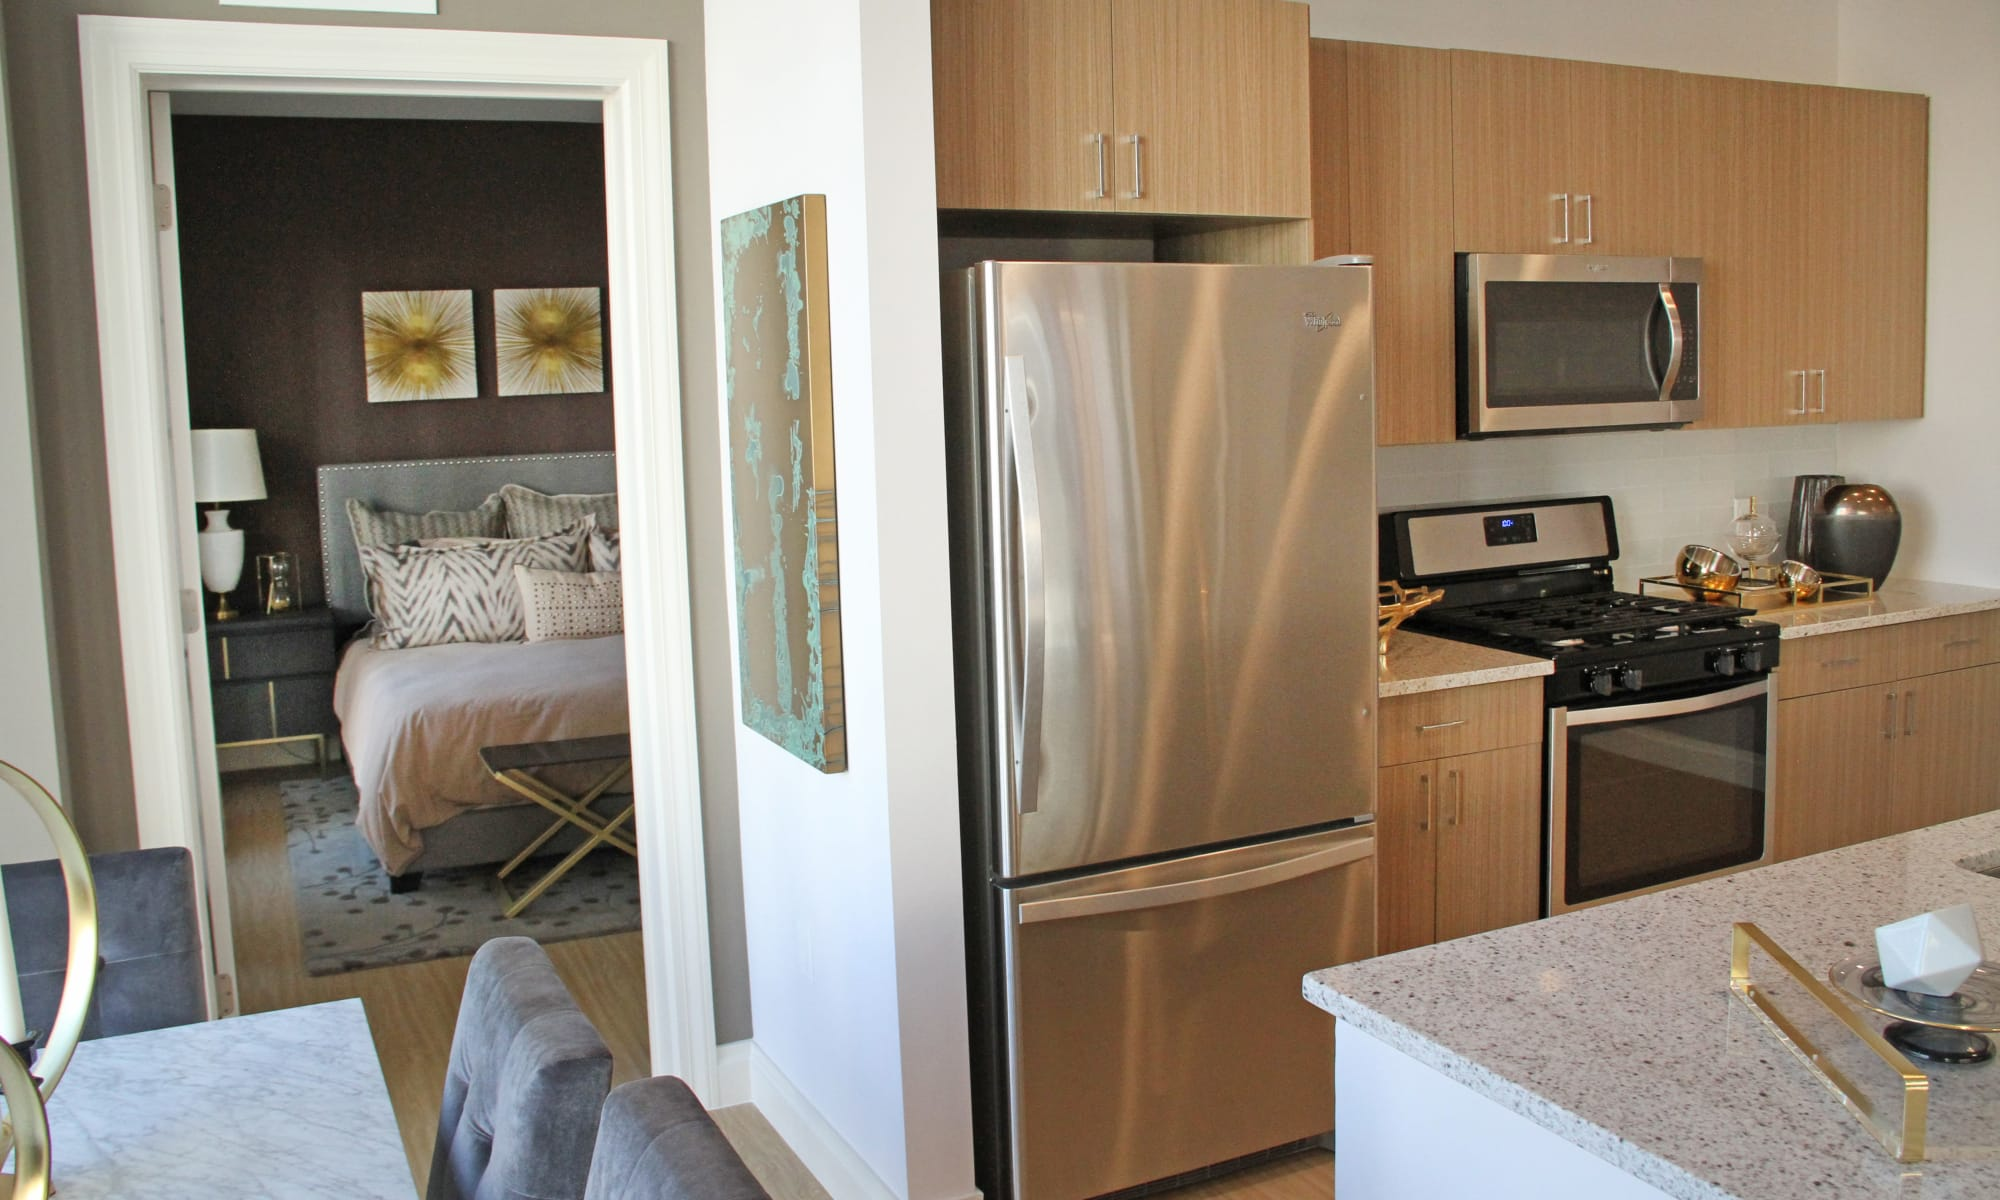 Kitchen and partial bedroom view at The Harper at Harmon Meadow